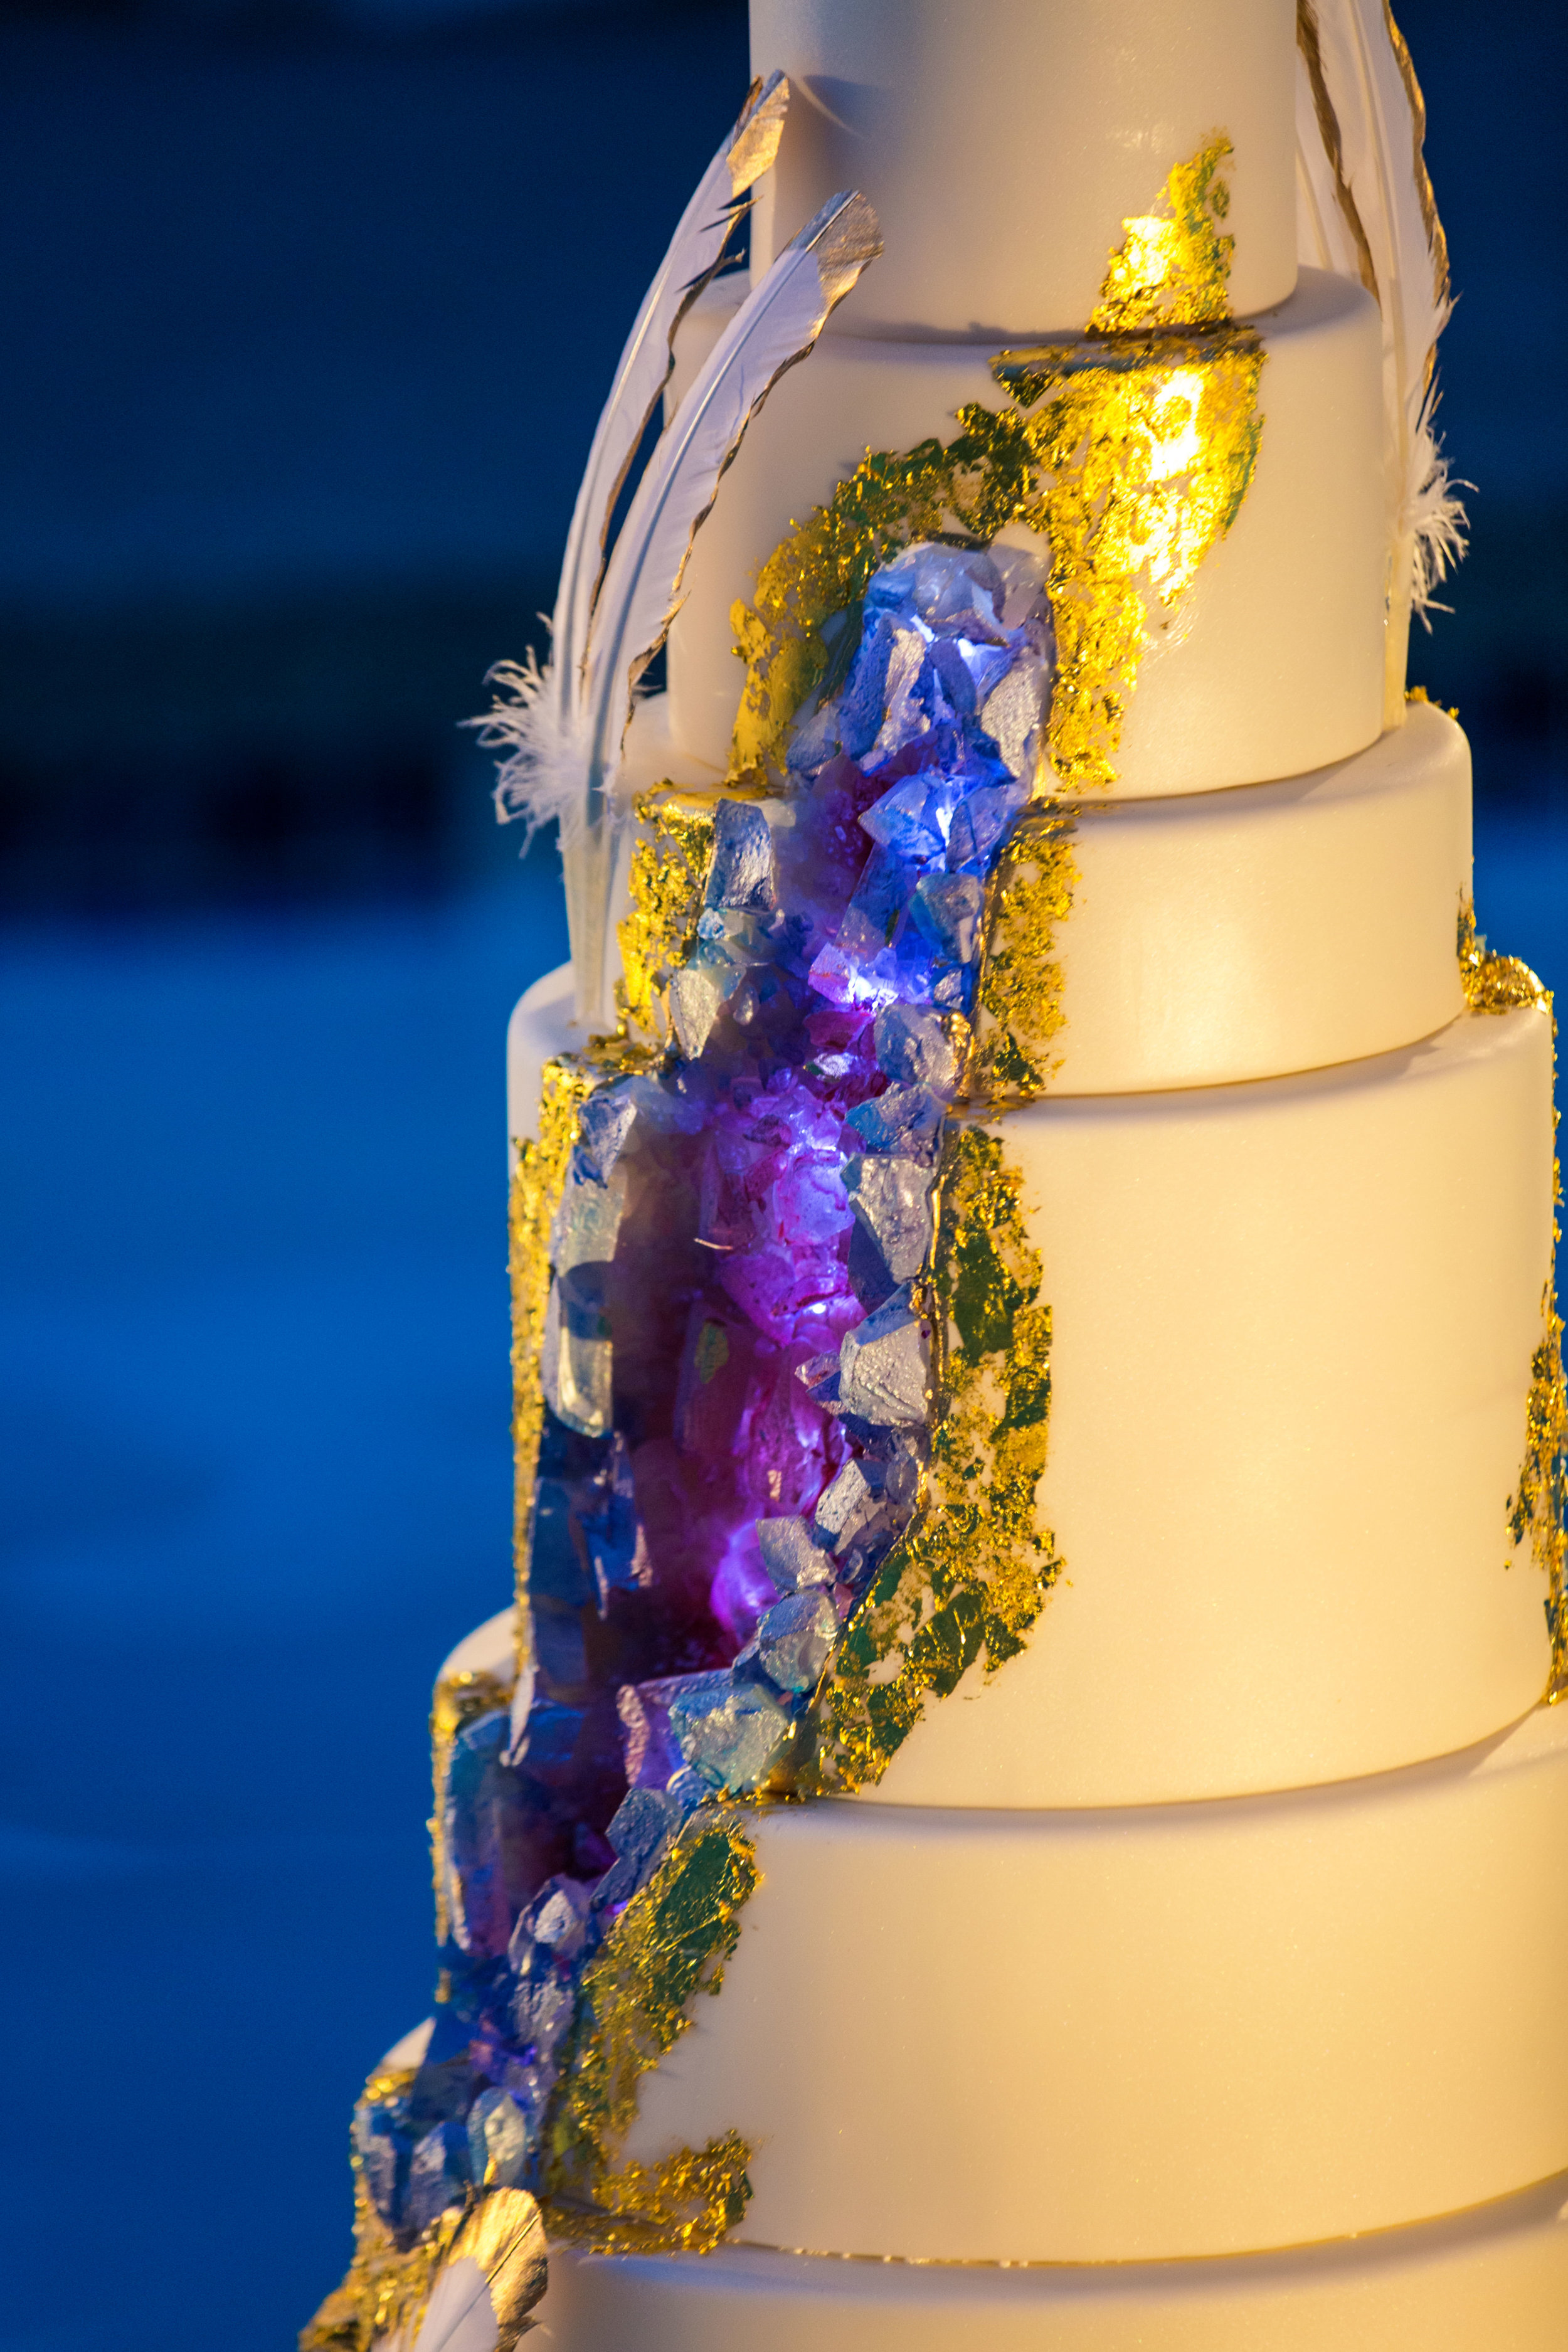 Geode cake with feathers.Jewel toned wedding centerpieces with gold accents.Wedding Planning by  Andrea Eppolito Events  · Photography by  Shandro Photo   · Wedding Venue  Four Seasons Las Vegas  · Floral and Decor by  Destination by Design  · Cake by  Four Seasons Las Vegas  · Chandeliers and Lighting by  LED Unplugged  · Dress by  Berta  and Menu by Alligator Soup